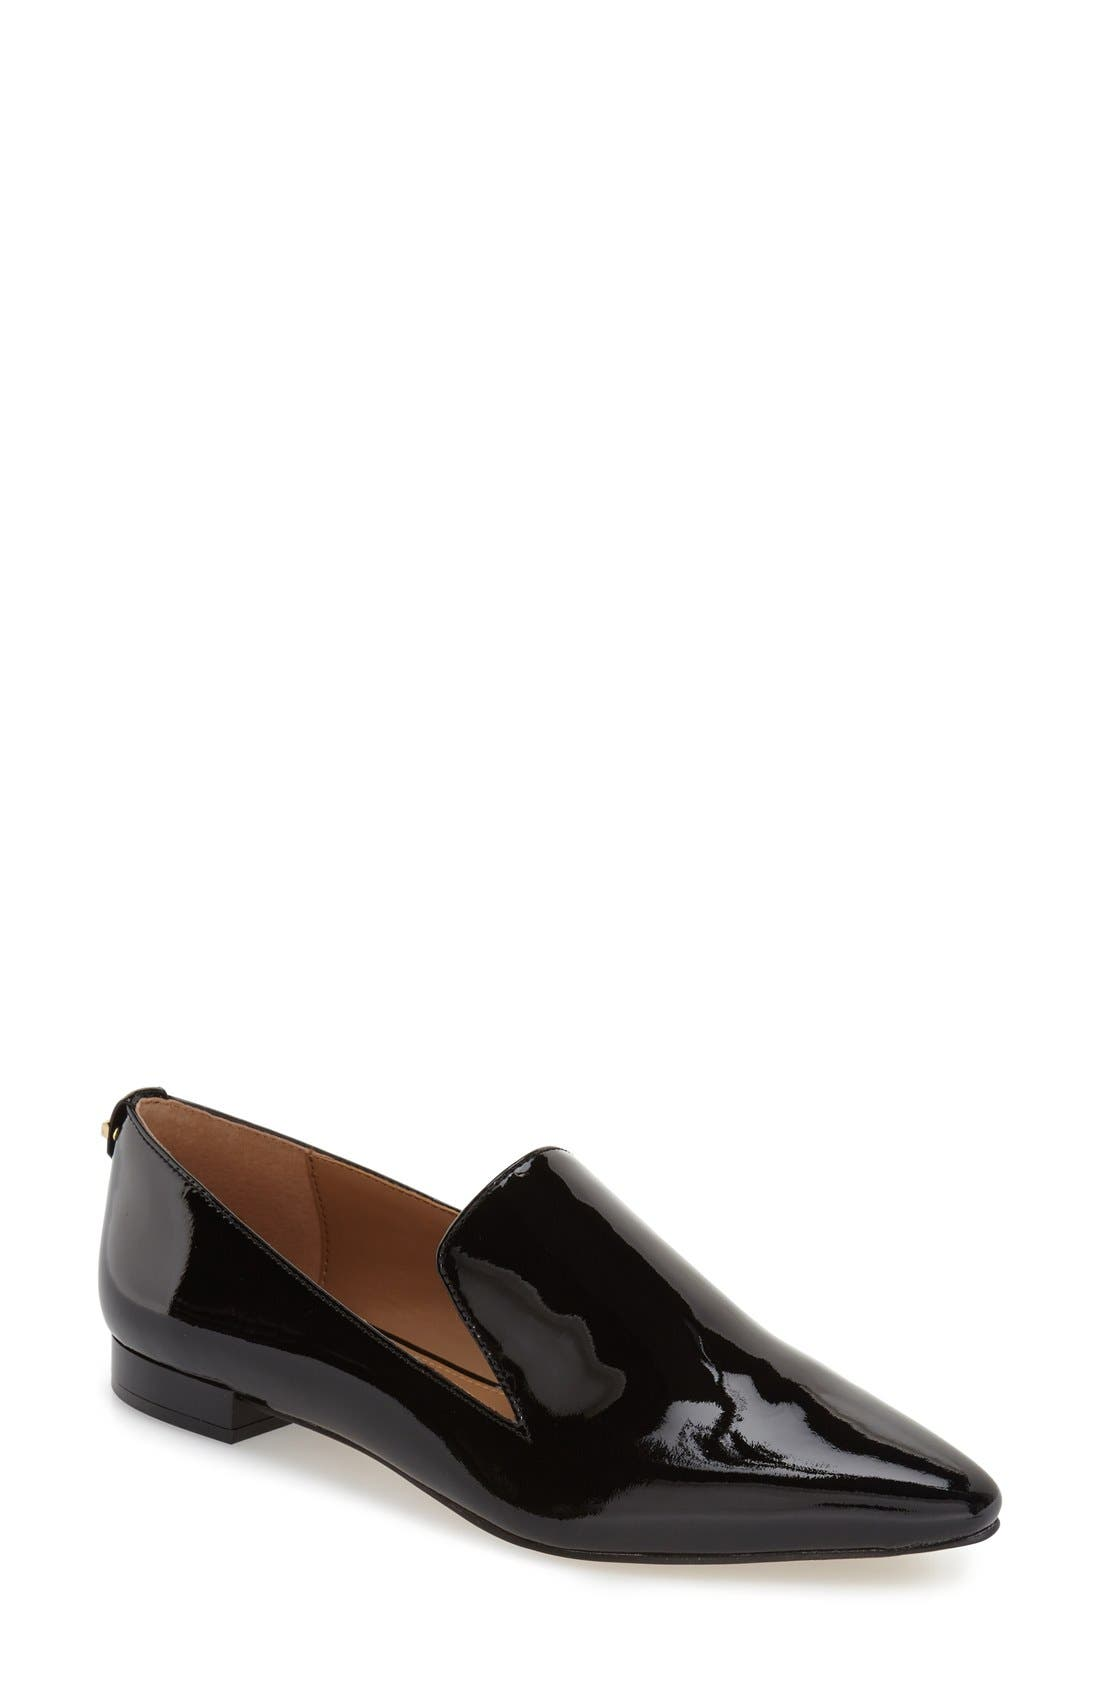 'Elin' Pointy Toe Loafer,                         Main,                         color, BLACK PATENT